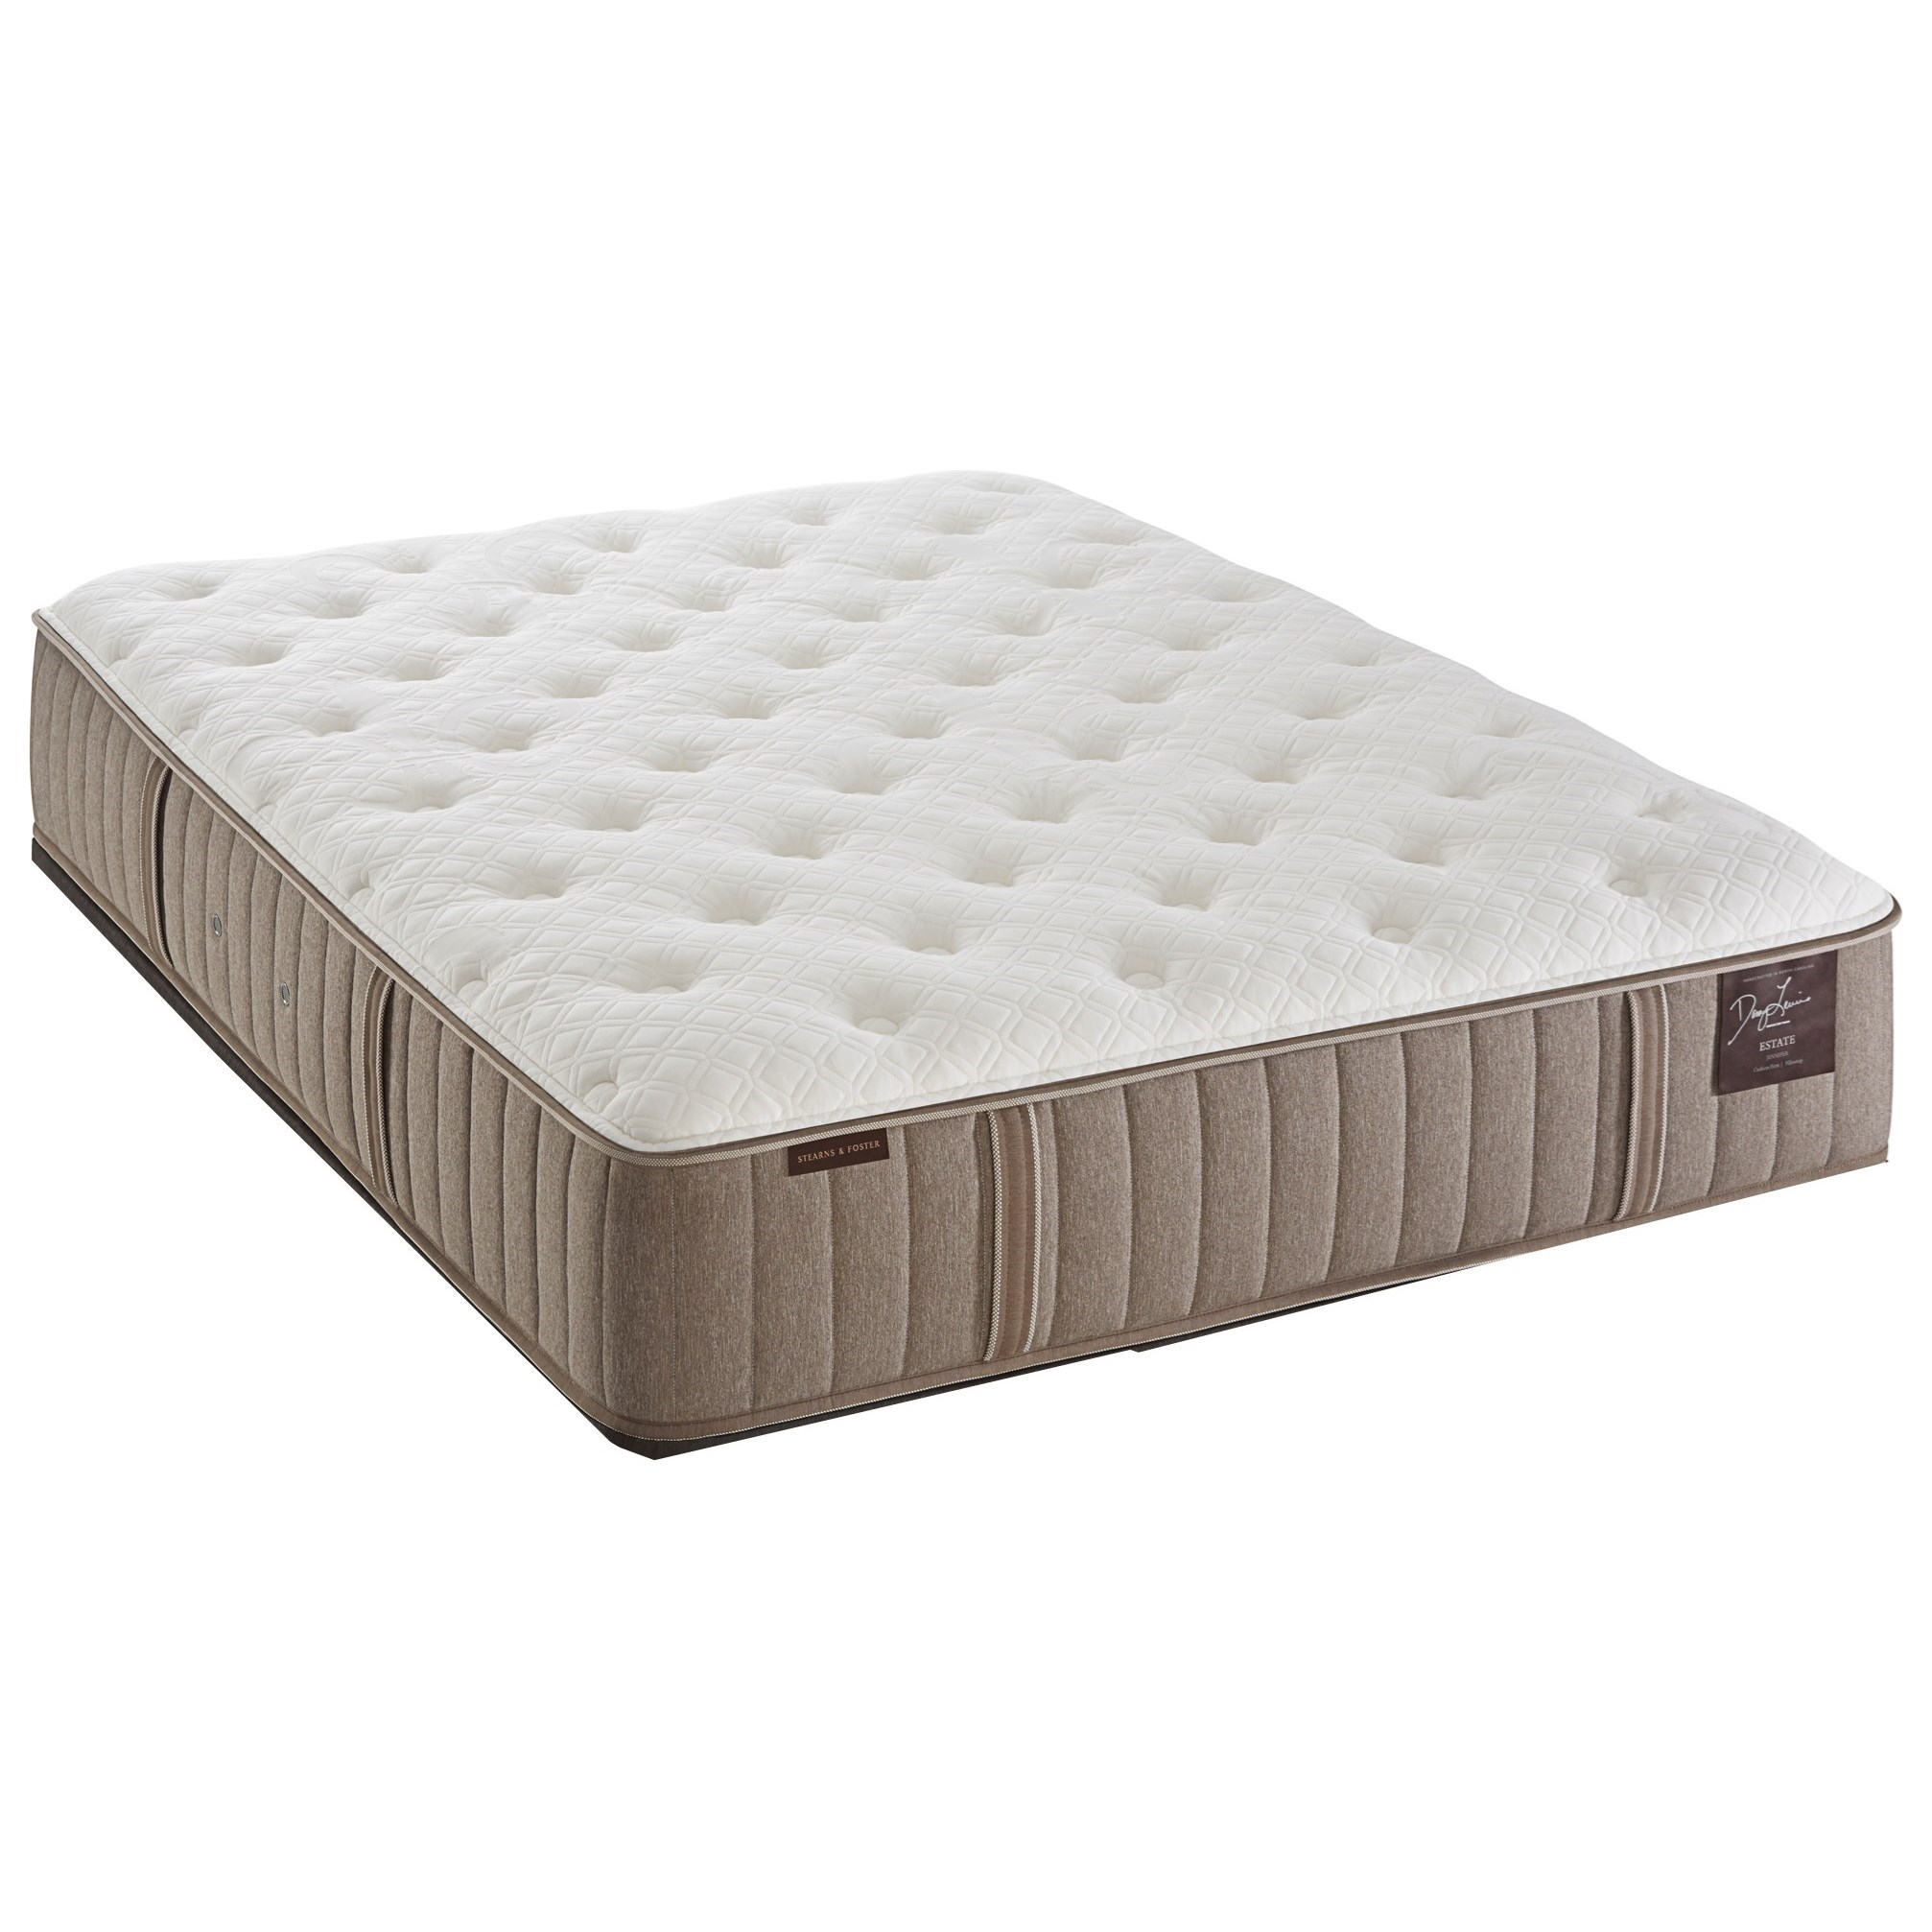 Stearns & Foster Scarborough Queen Plush Tight Top Mattress - Item Number: Plush-Q